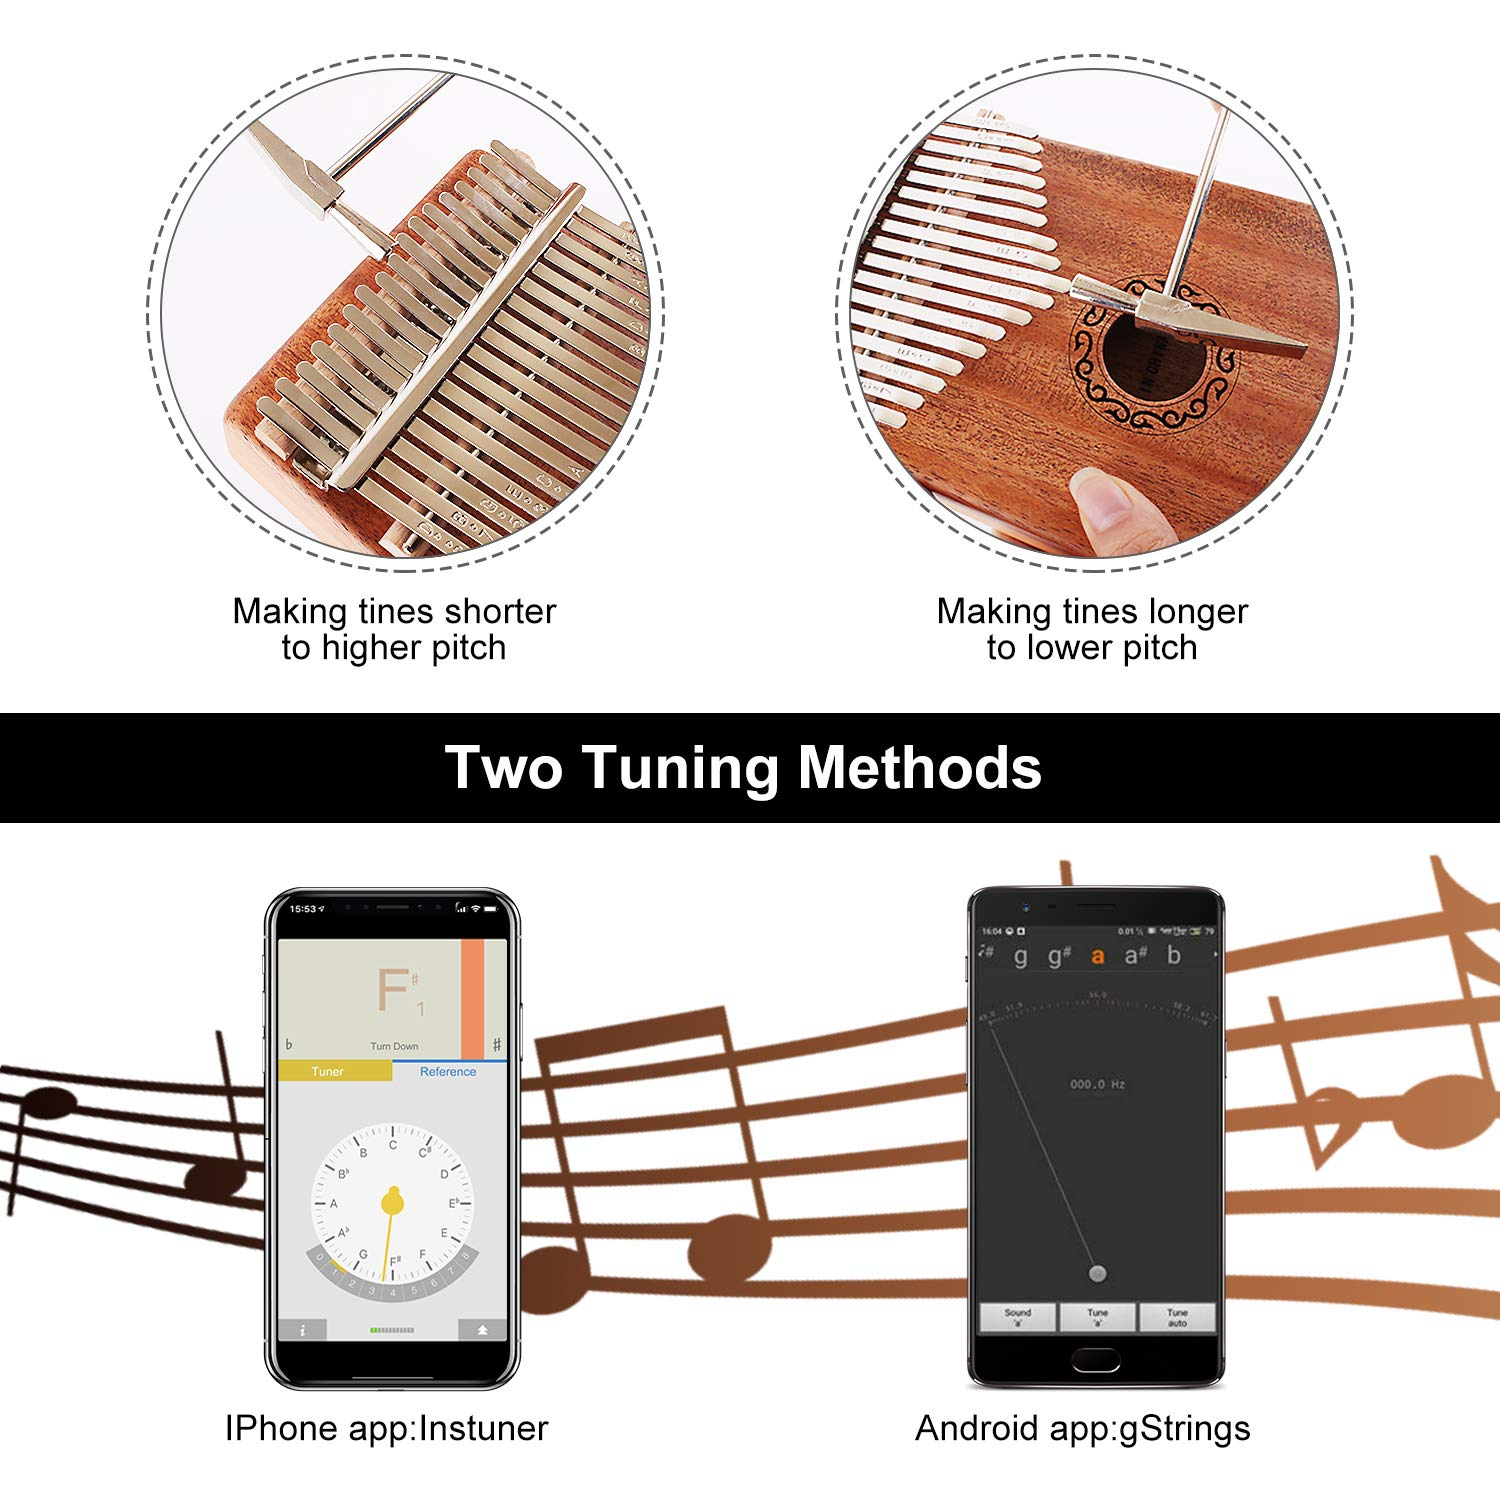 CXhome Electric Kalimba 17 Key Thumb Piano,Mbira African Mahogany Finger Piano Pickup with 6.35mm Audio Interface Sanza Hand Kit, Likembe Musical Instruments for beginners or professioners by CXhome (Image #2)